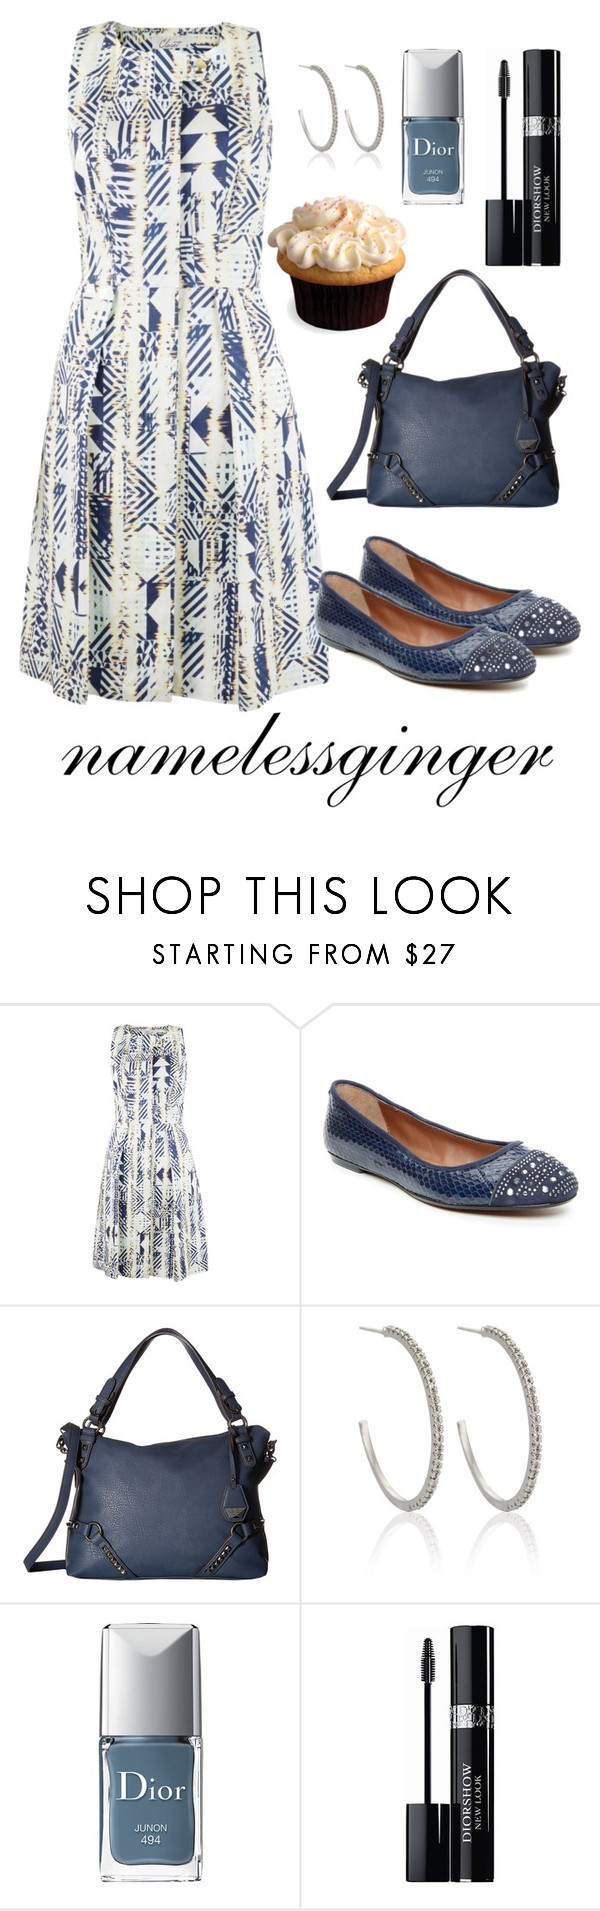 """""""untitled #552"""" by namelessginger ❤ liked on Polyvore featuring Closet, Donald J Pliner, Jessica Simpson, Astrid & Miyu and Christian Dior"""